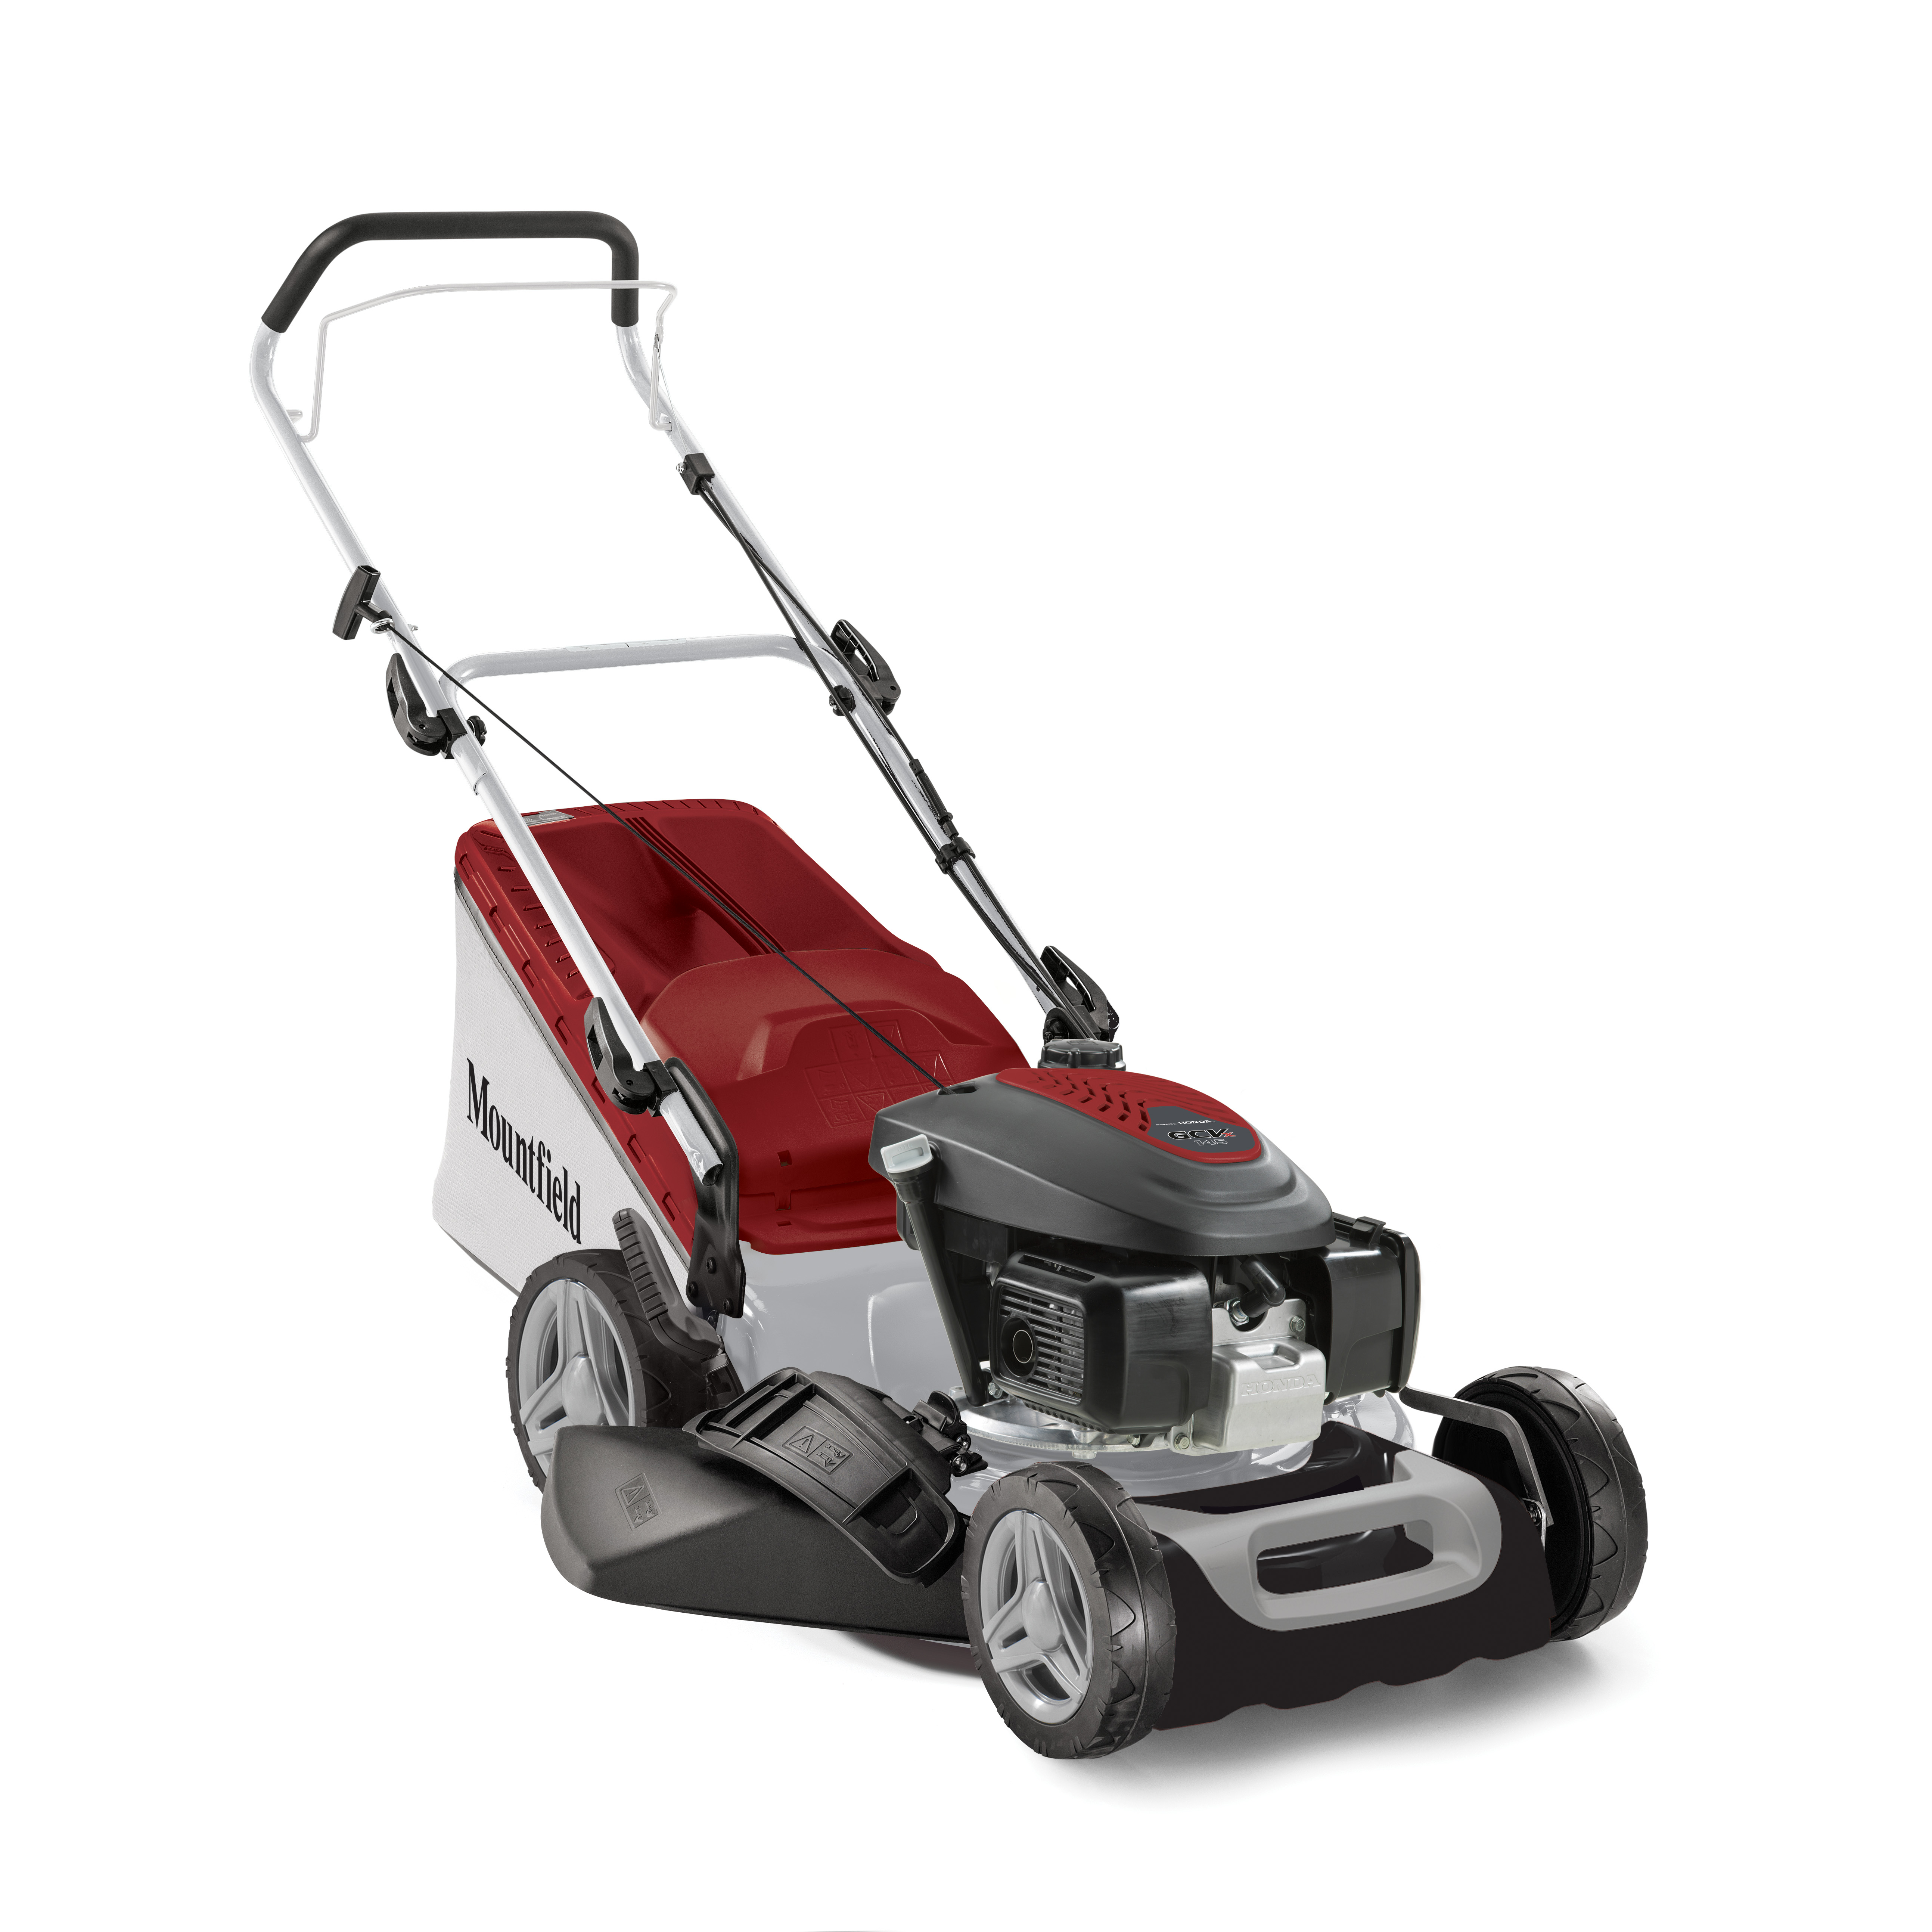 MOUNTFIELD HP425 Petrol Lawn Mower